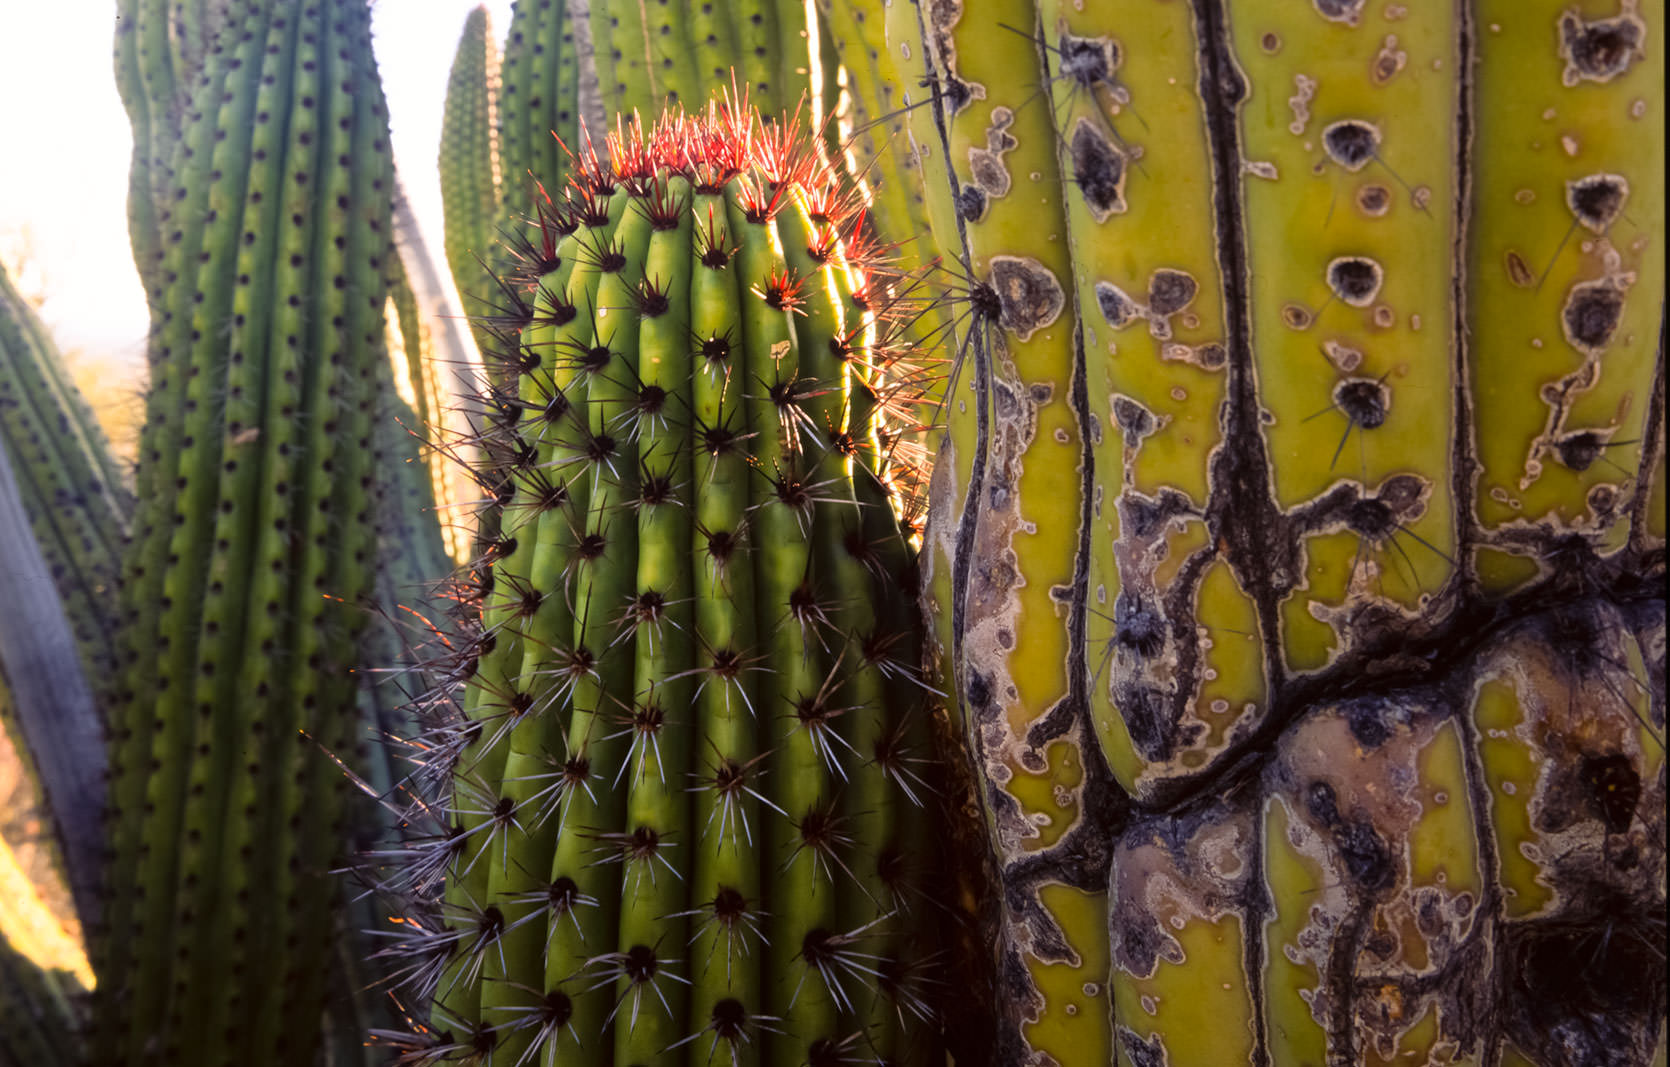 Organpipe Cactus Photo